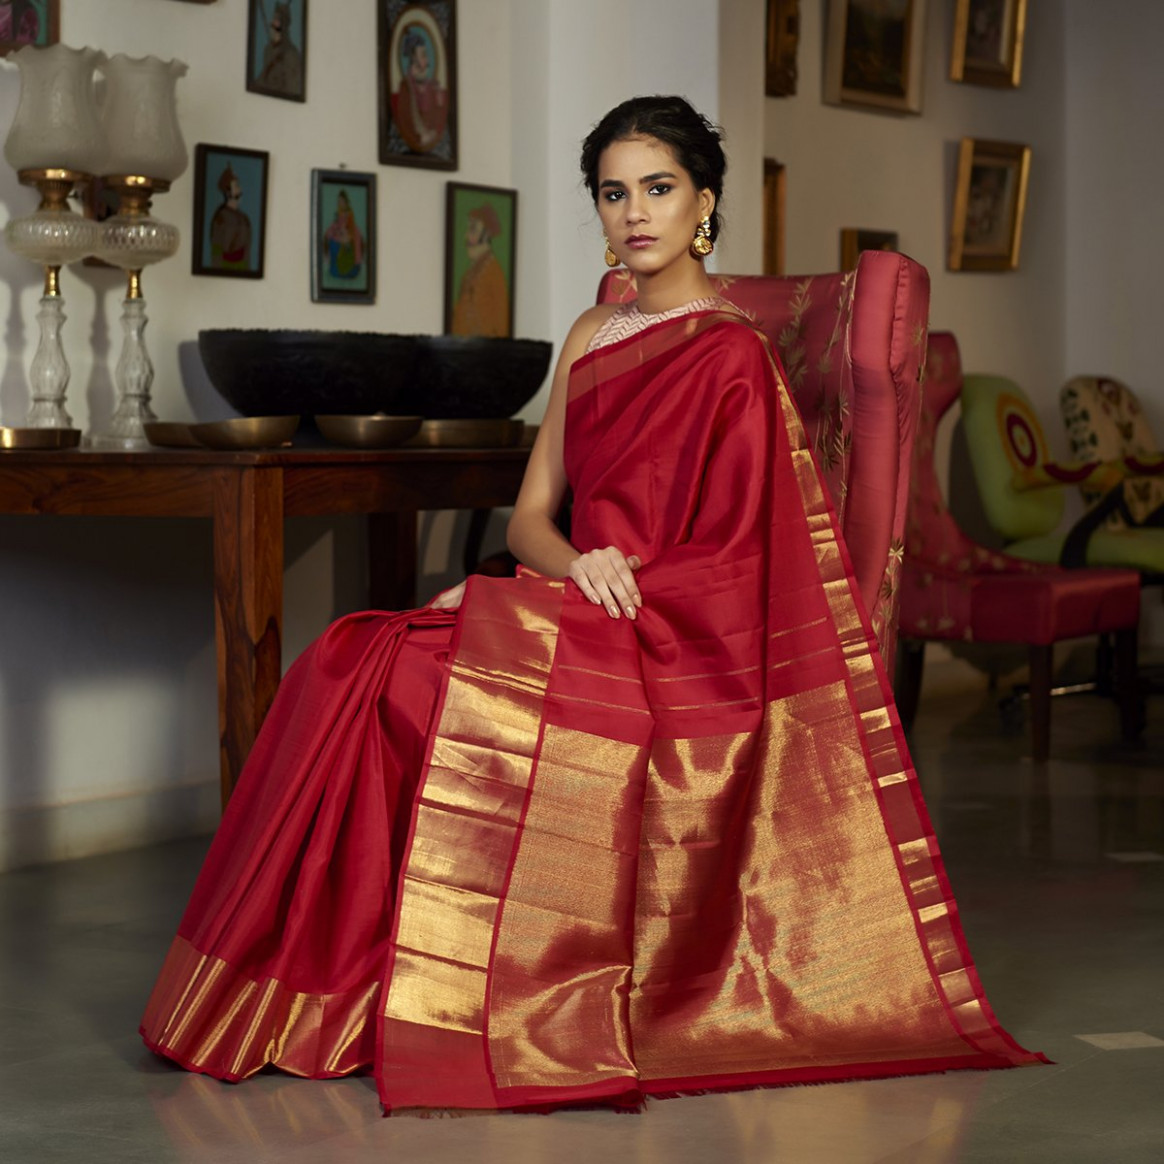 Red Kanjivaram silk saree with a solid gold zari border